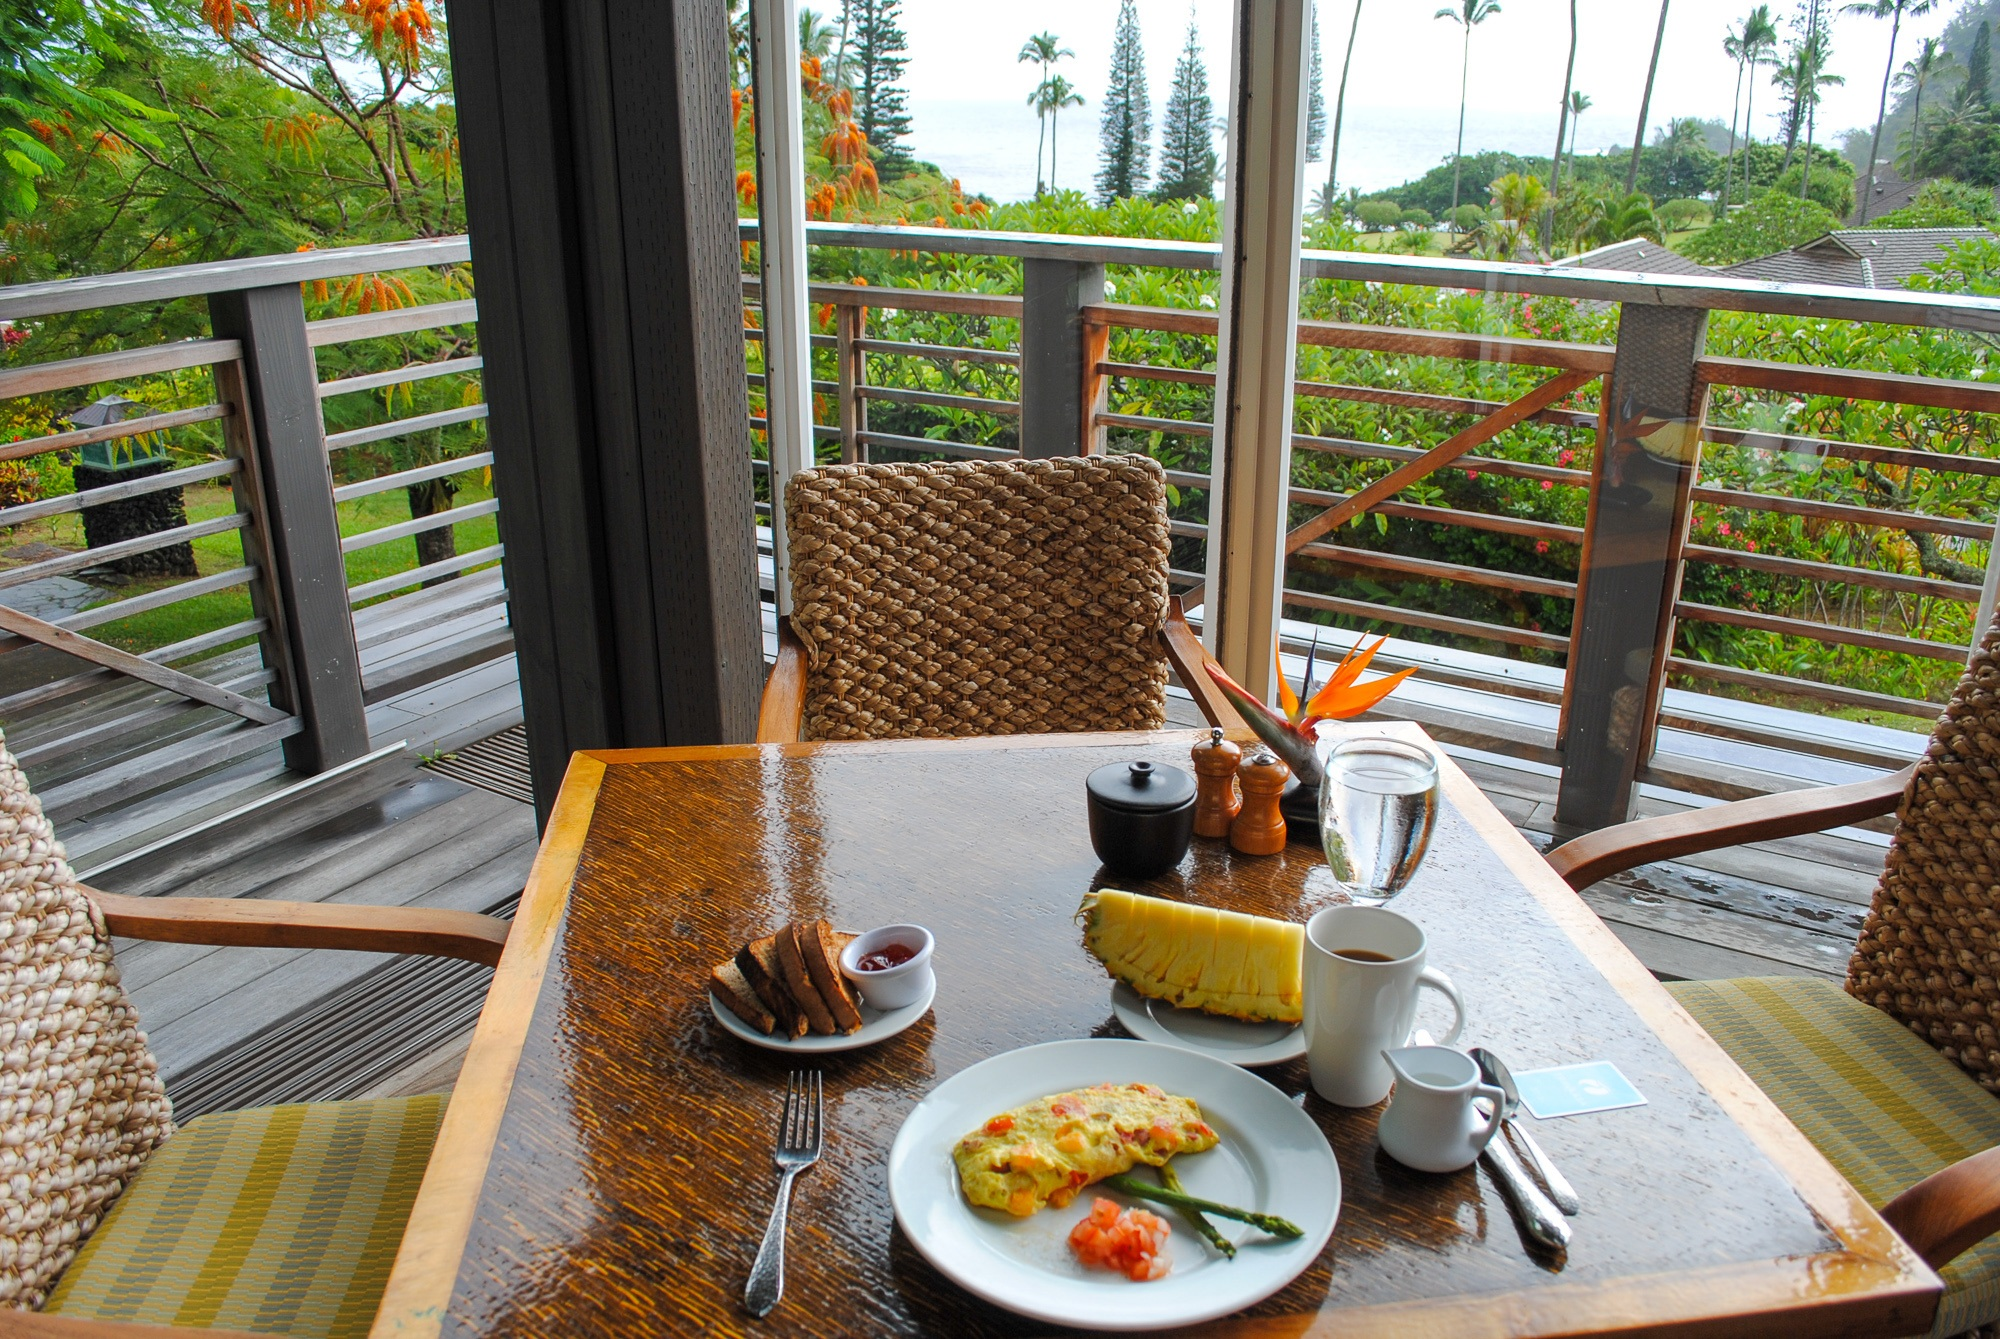 Breakfast with a view at Hana Maui Resort